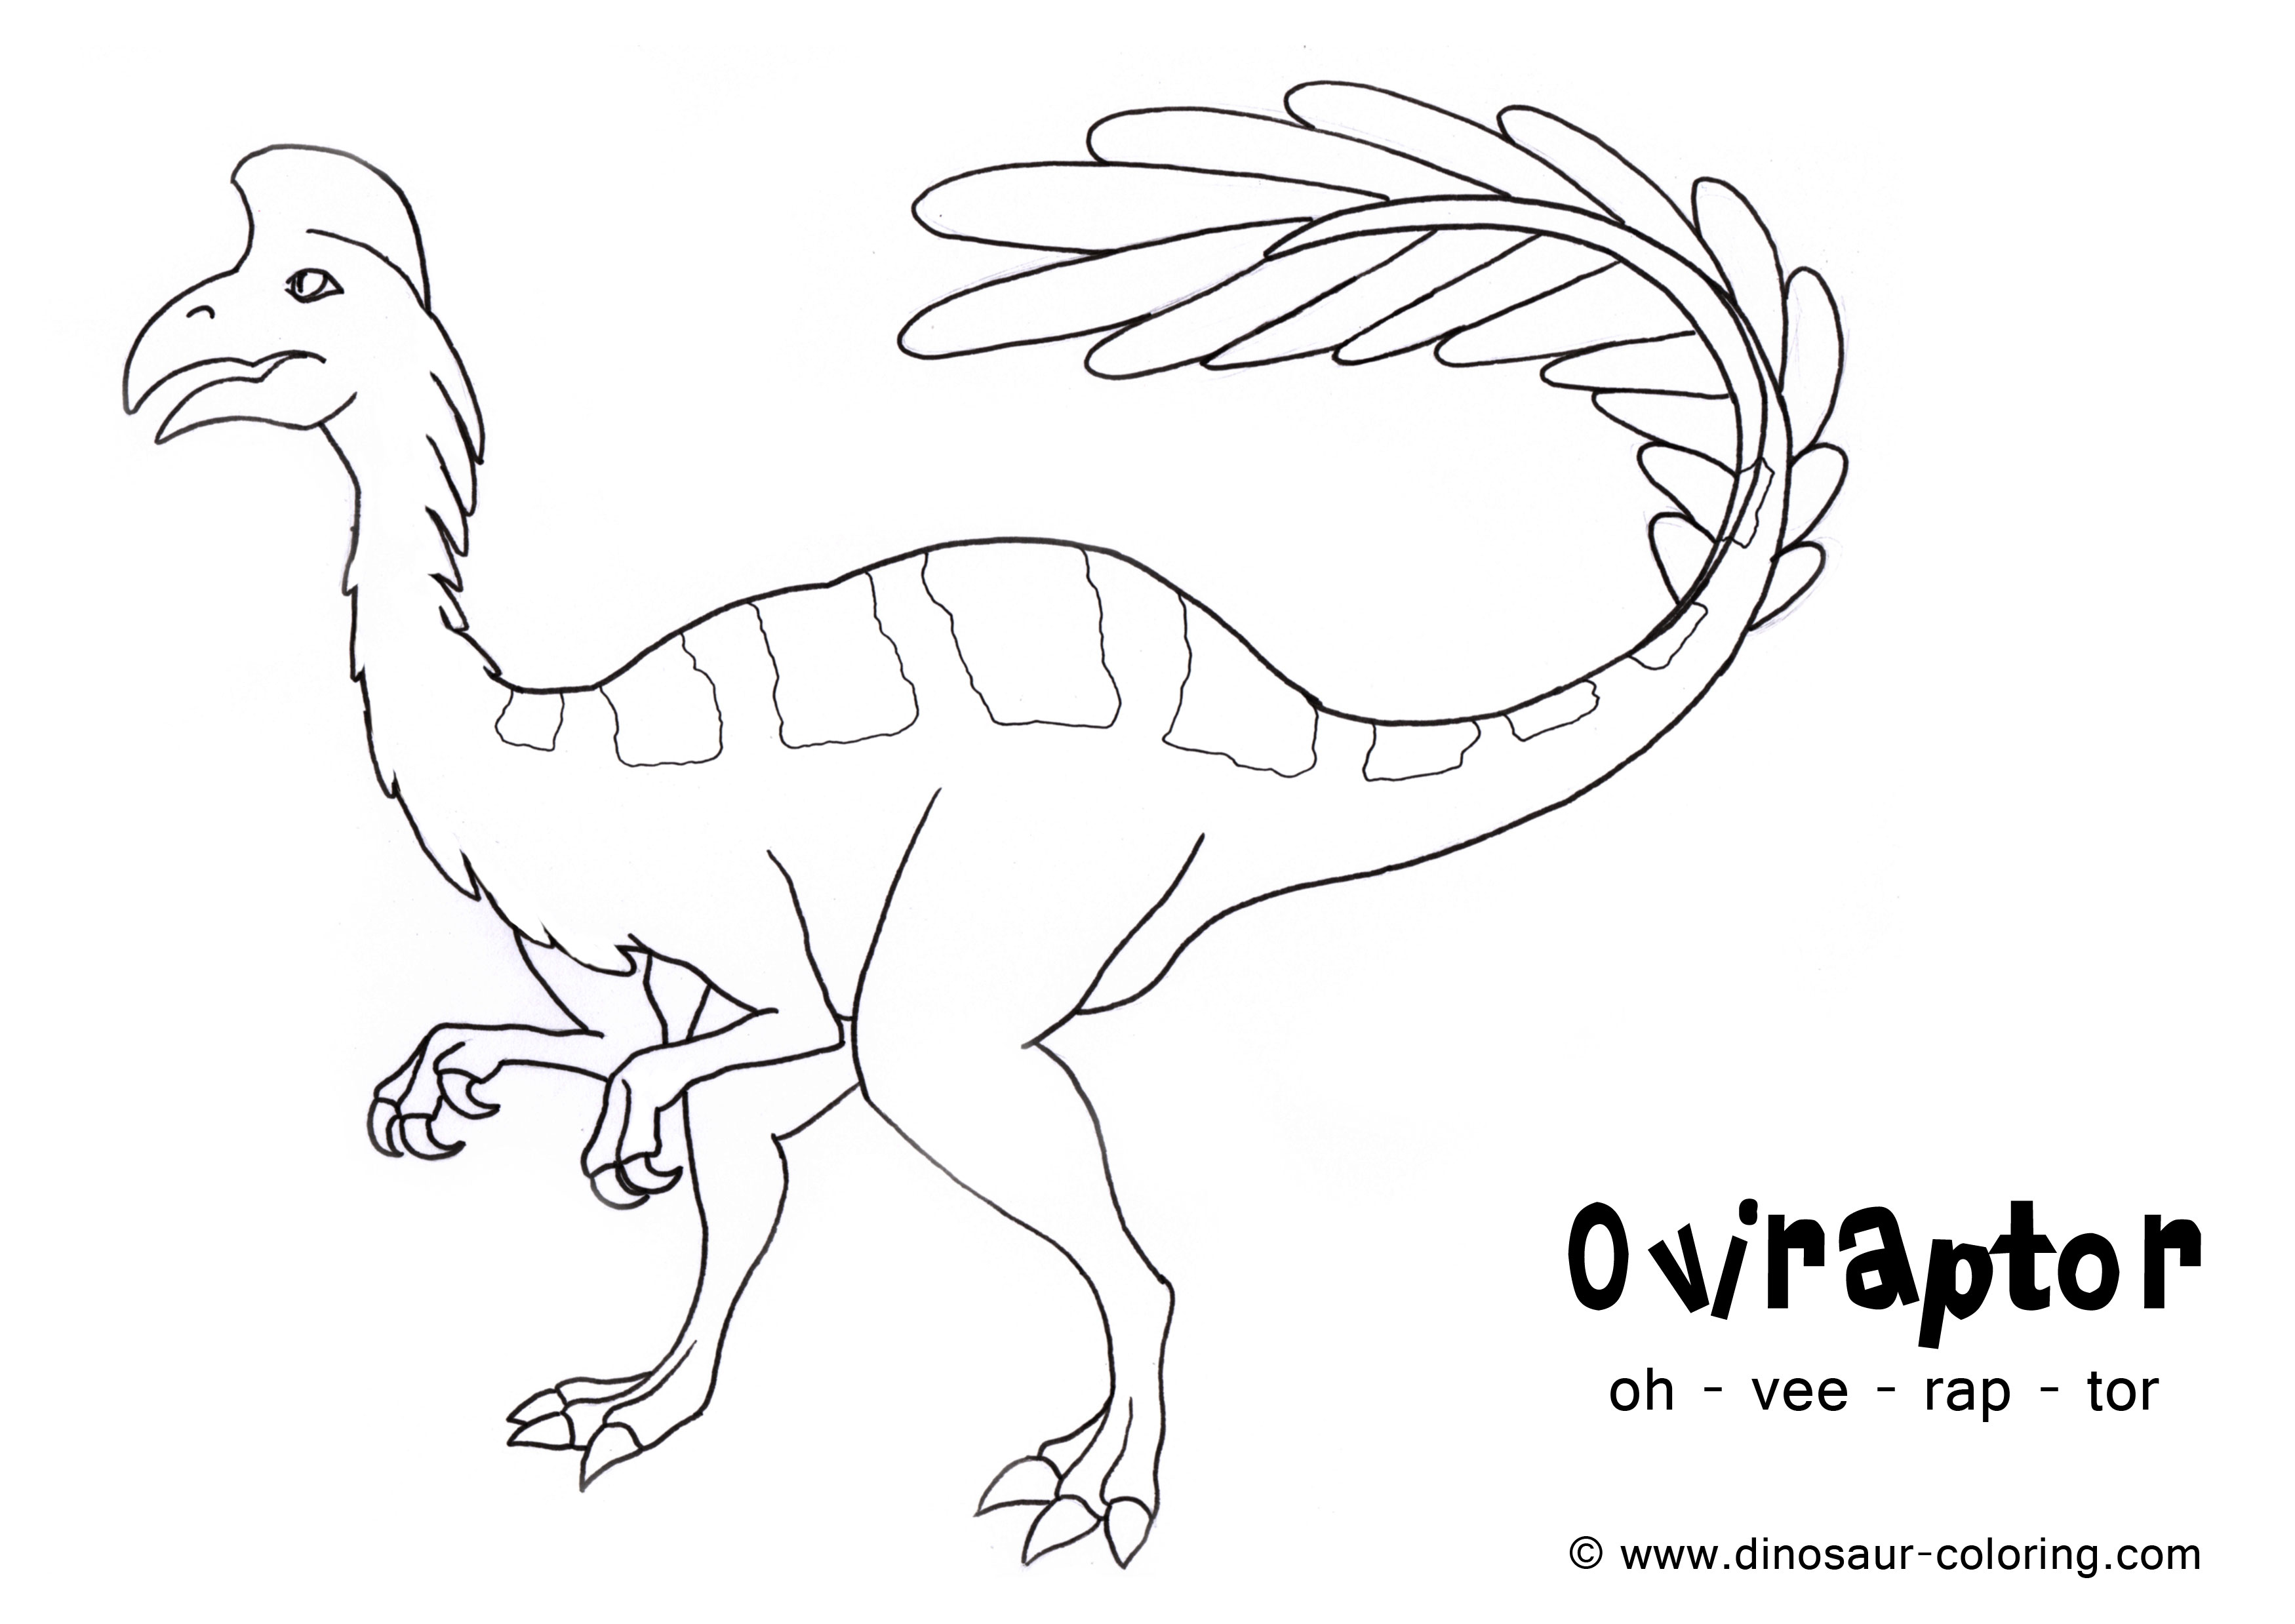 Dinosaur coloring #5, Download drawings